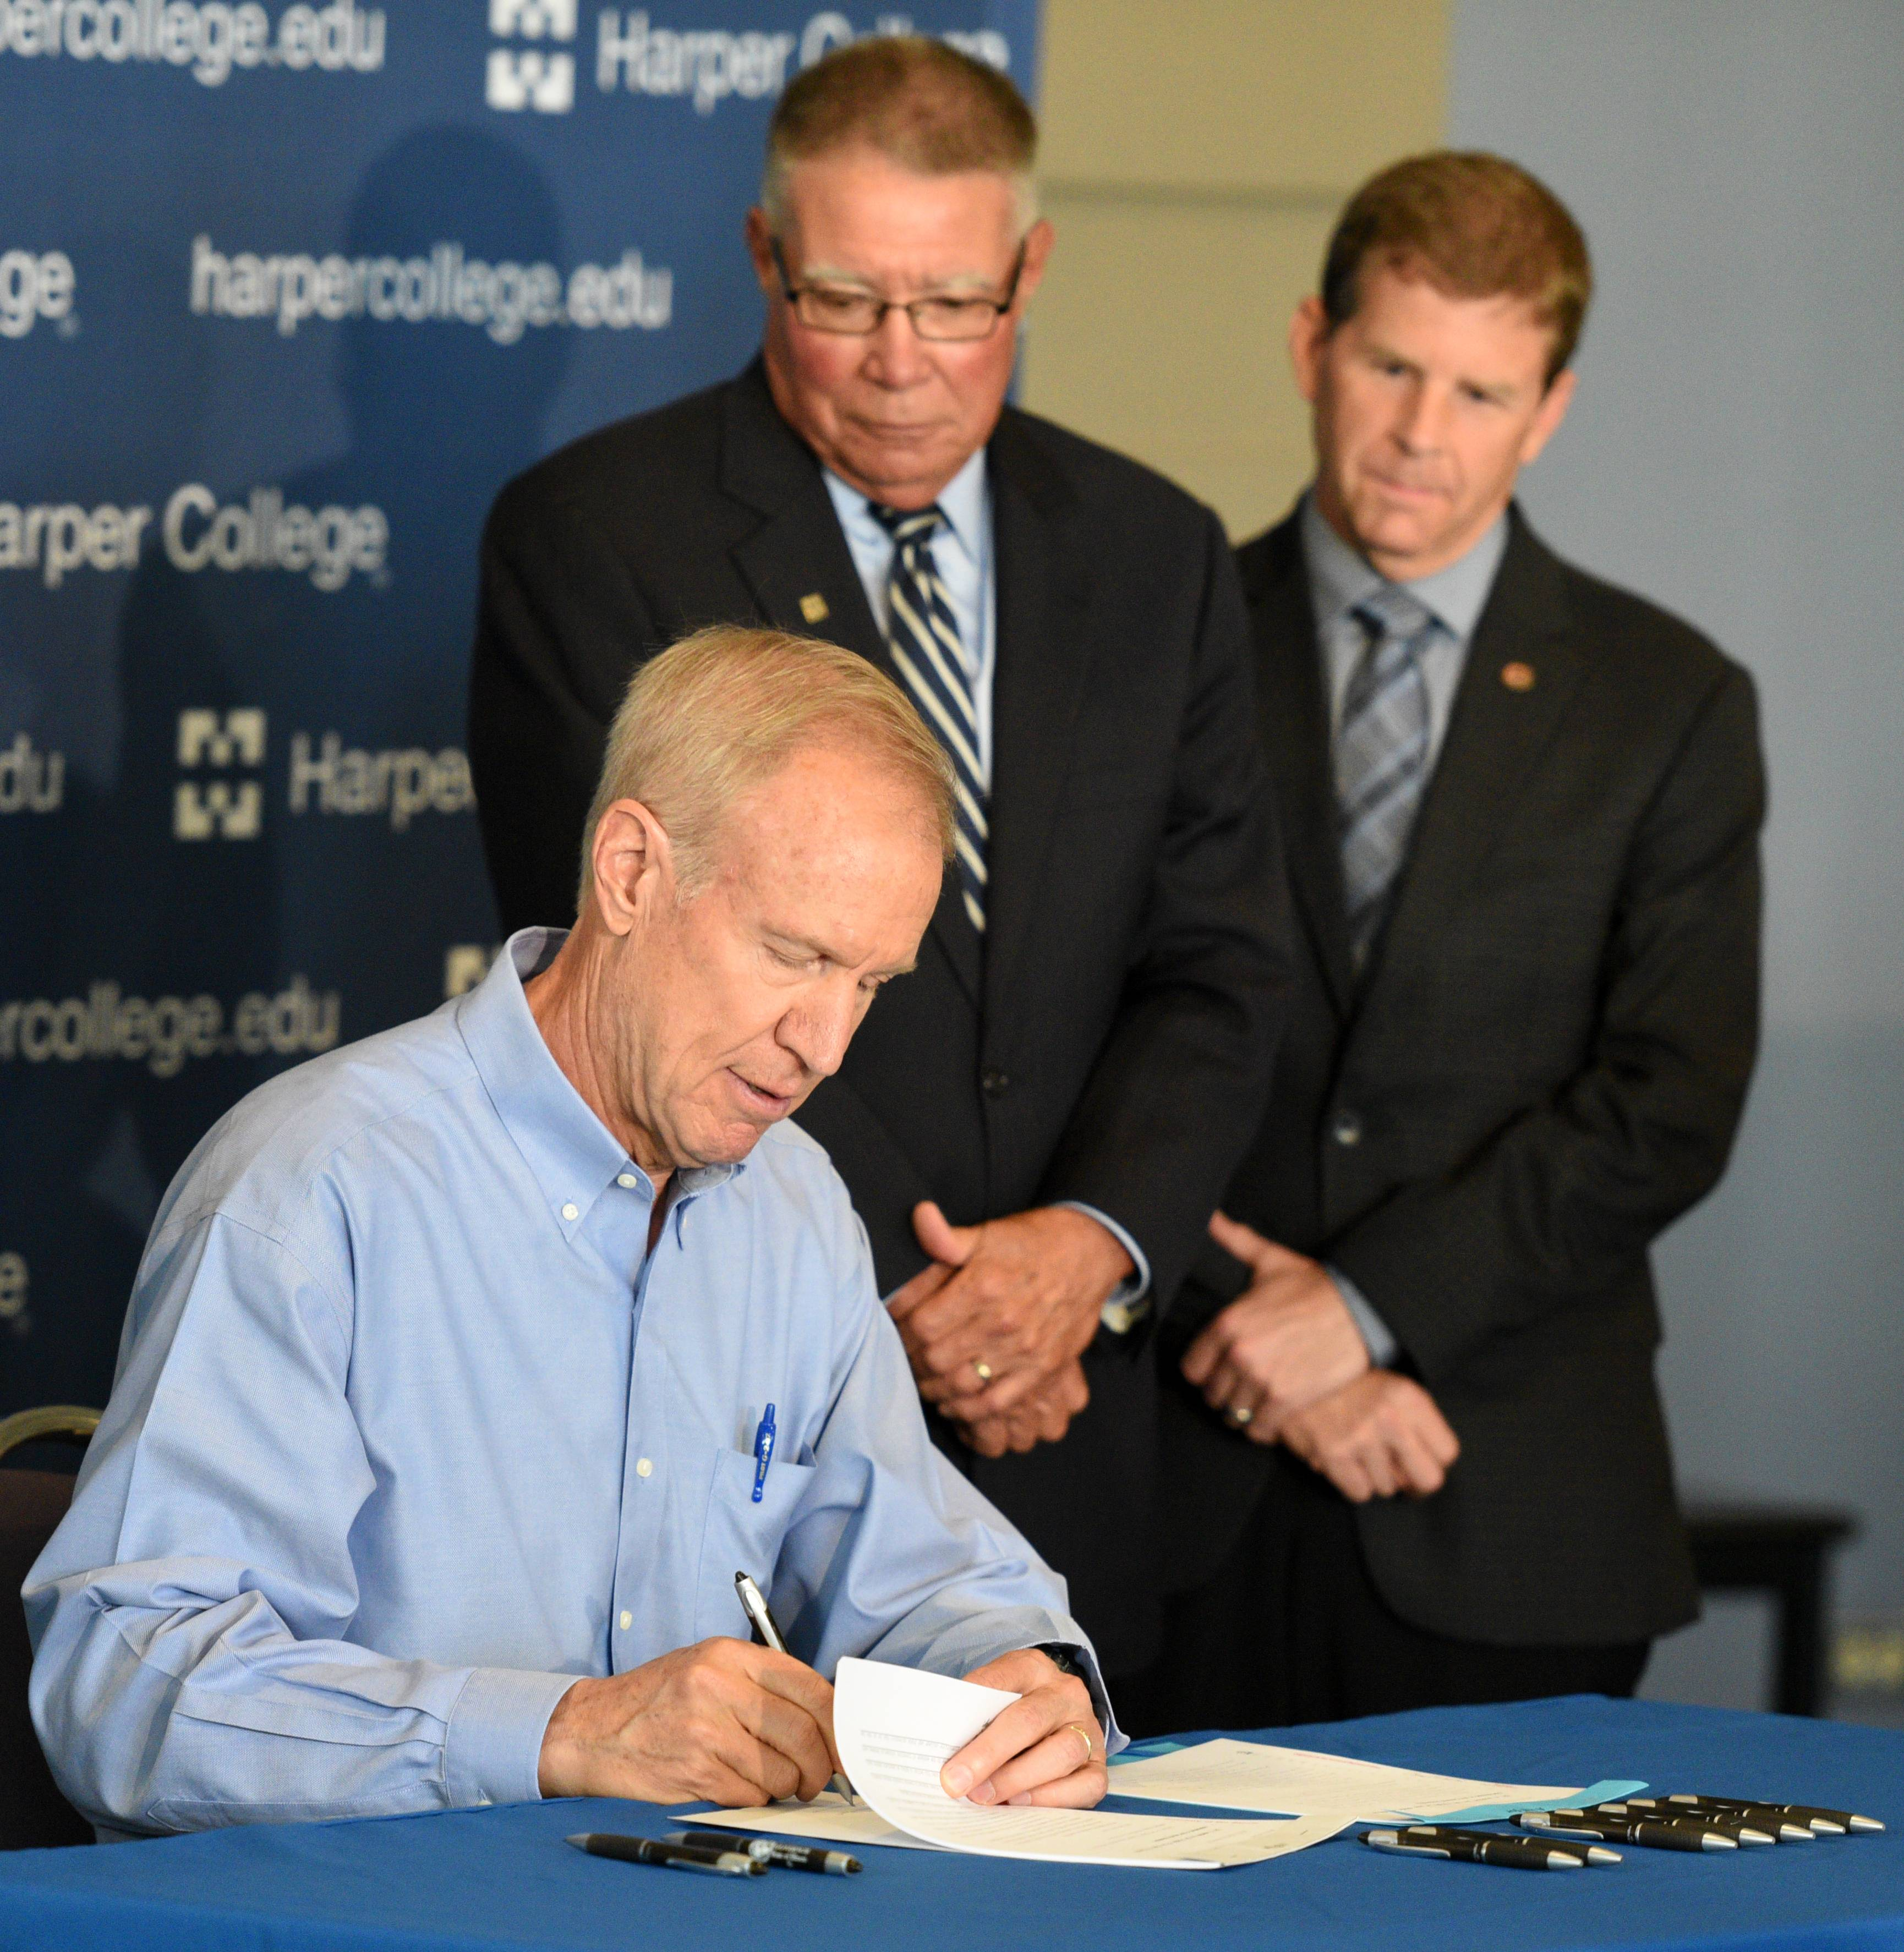 Gov. Bruce Rauner signs a pair of higher education bills Monday at Harper College in Palatine as Harper President Ken Ender, center, and Republican state Sen. Tom Rooney of Rolling Meadows watch.